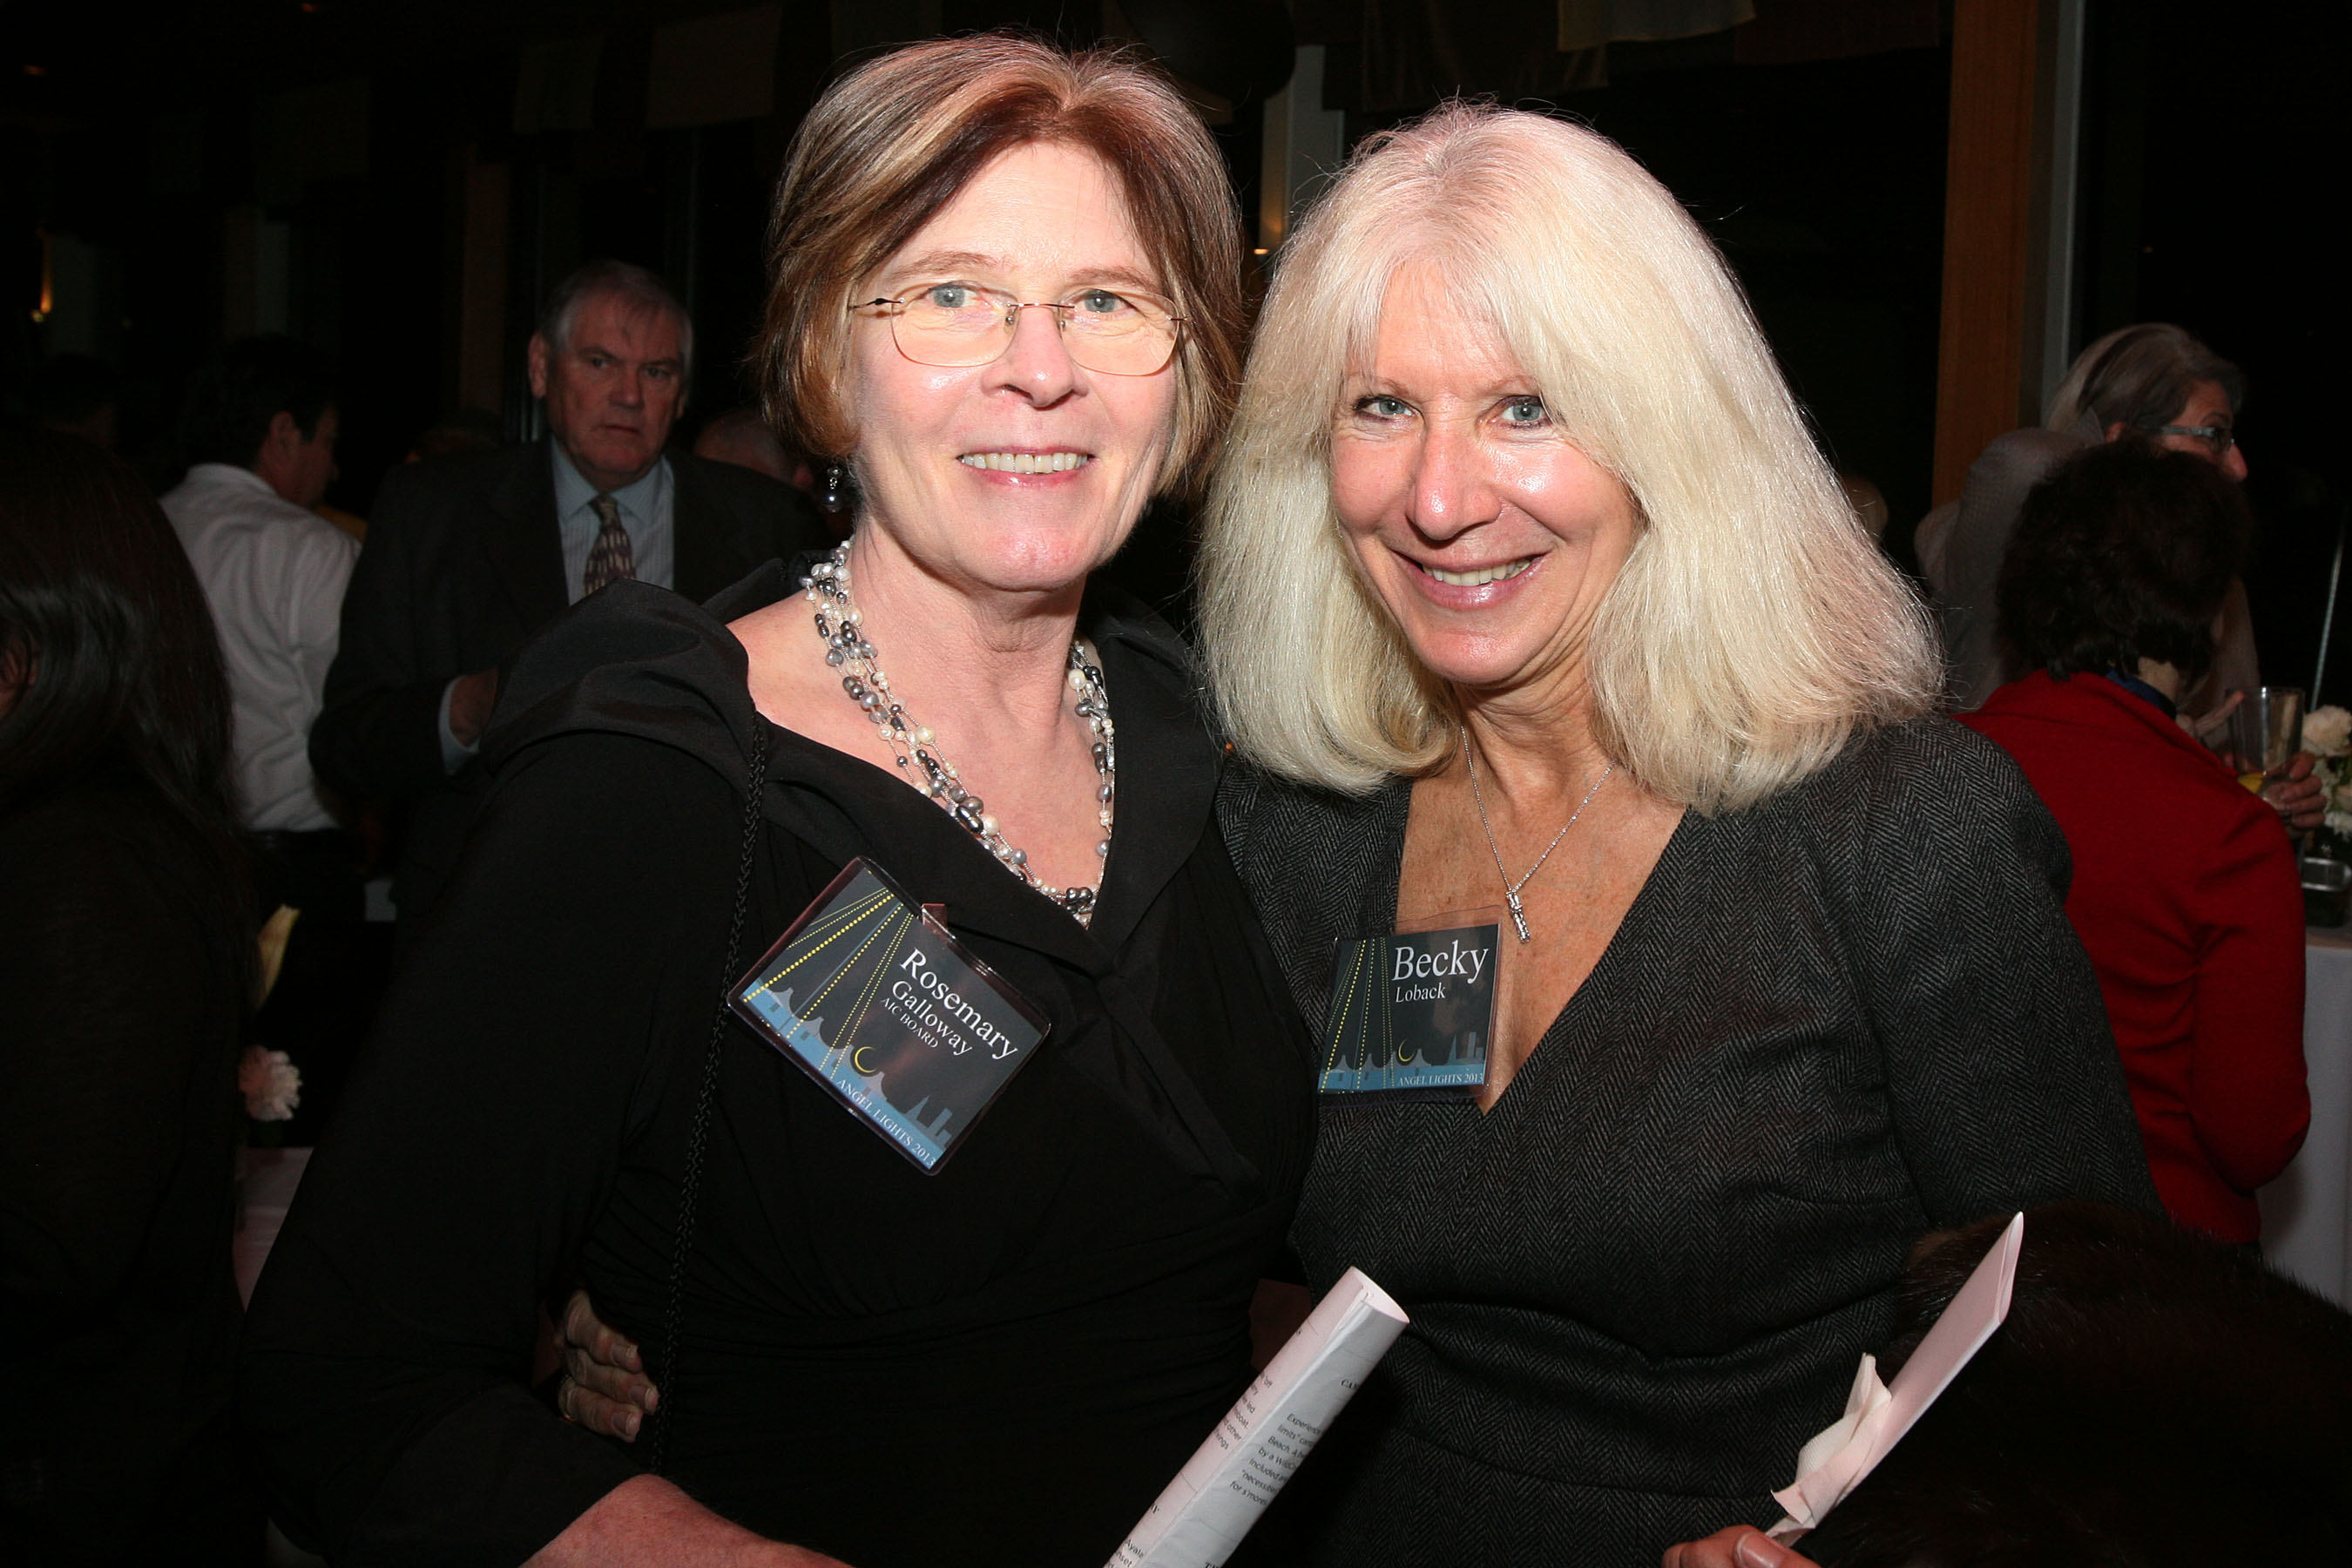 Rosemary Galloway - AIC Board of Directors and Becky Loback